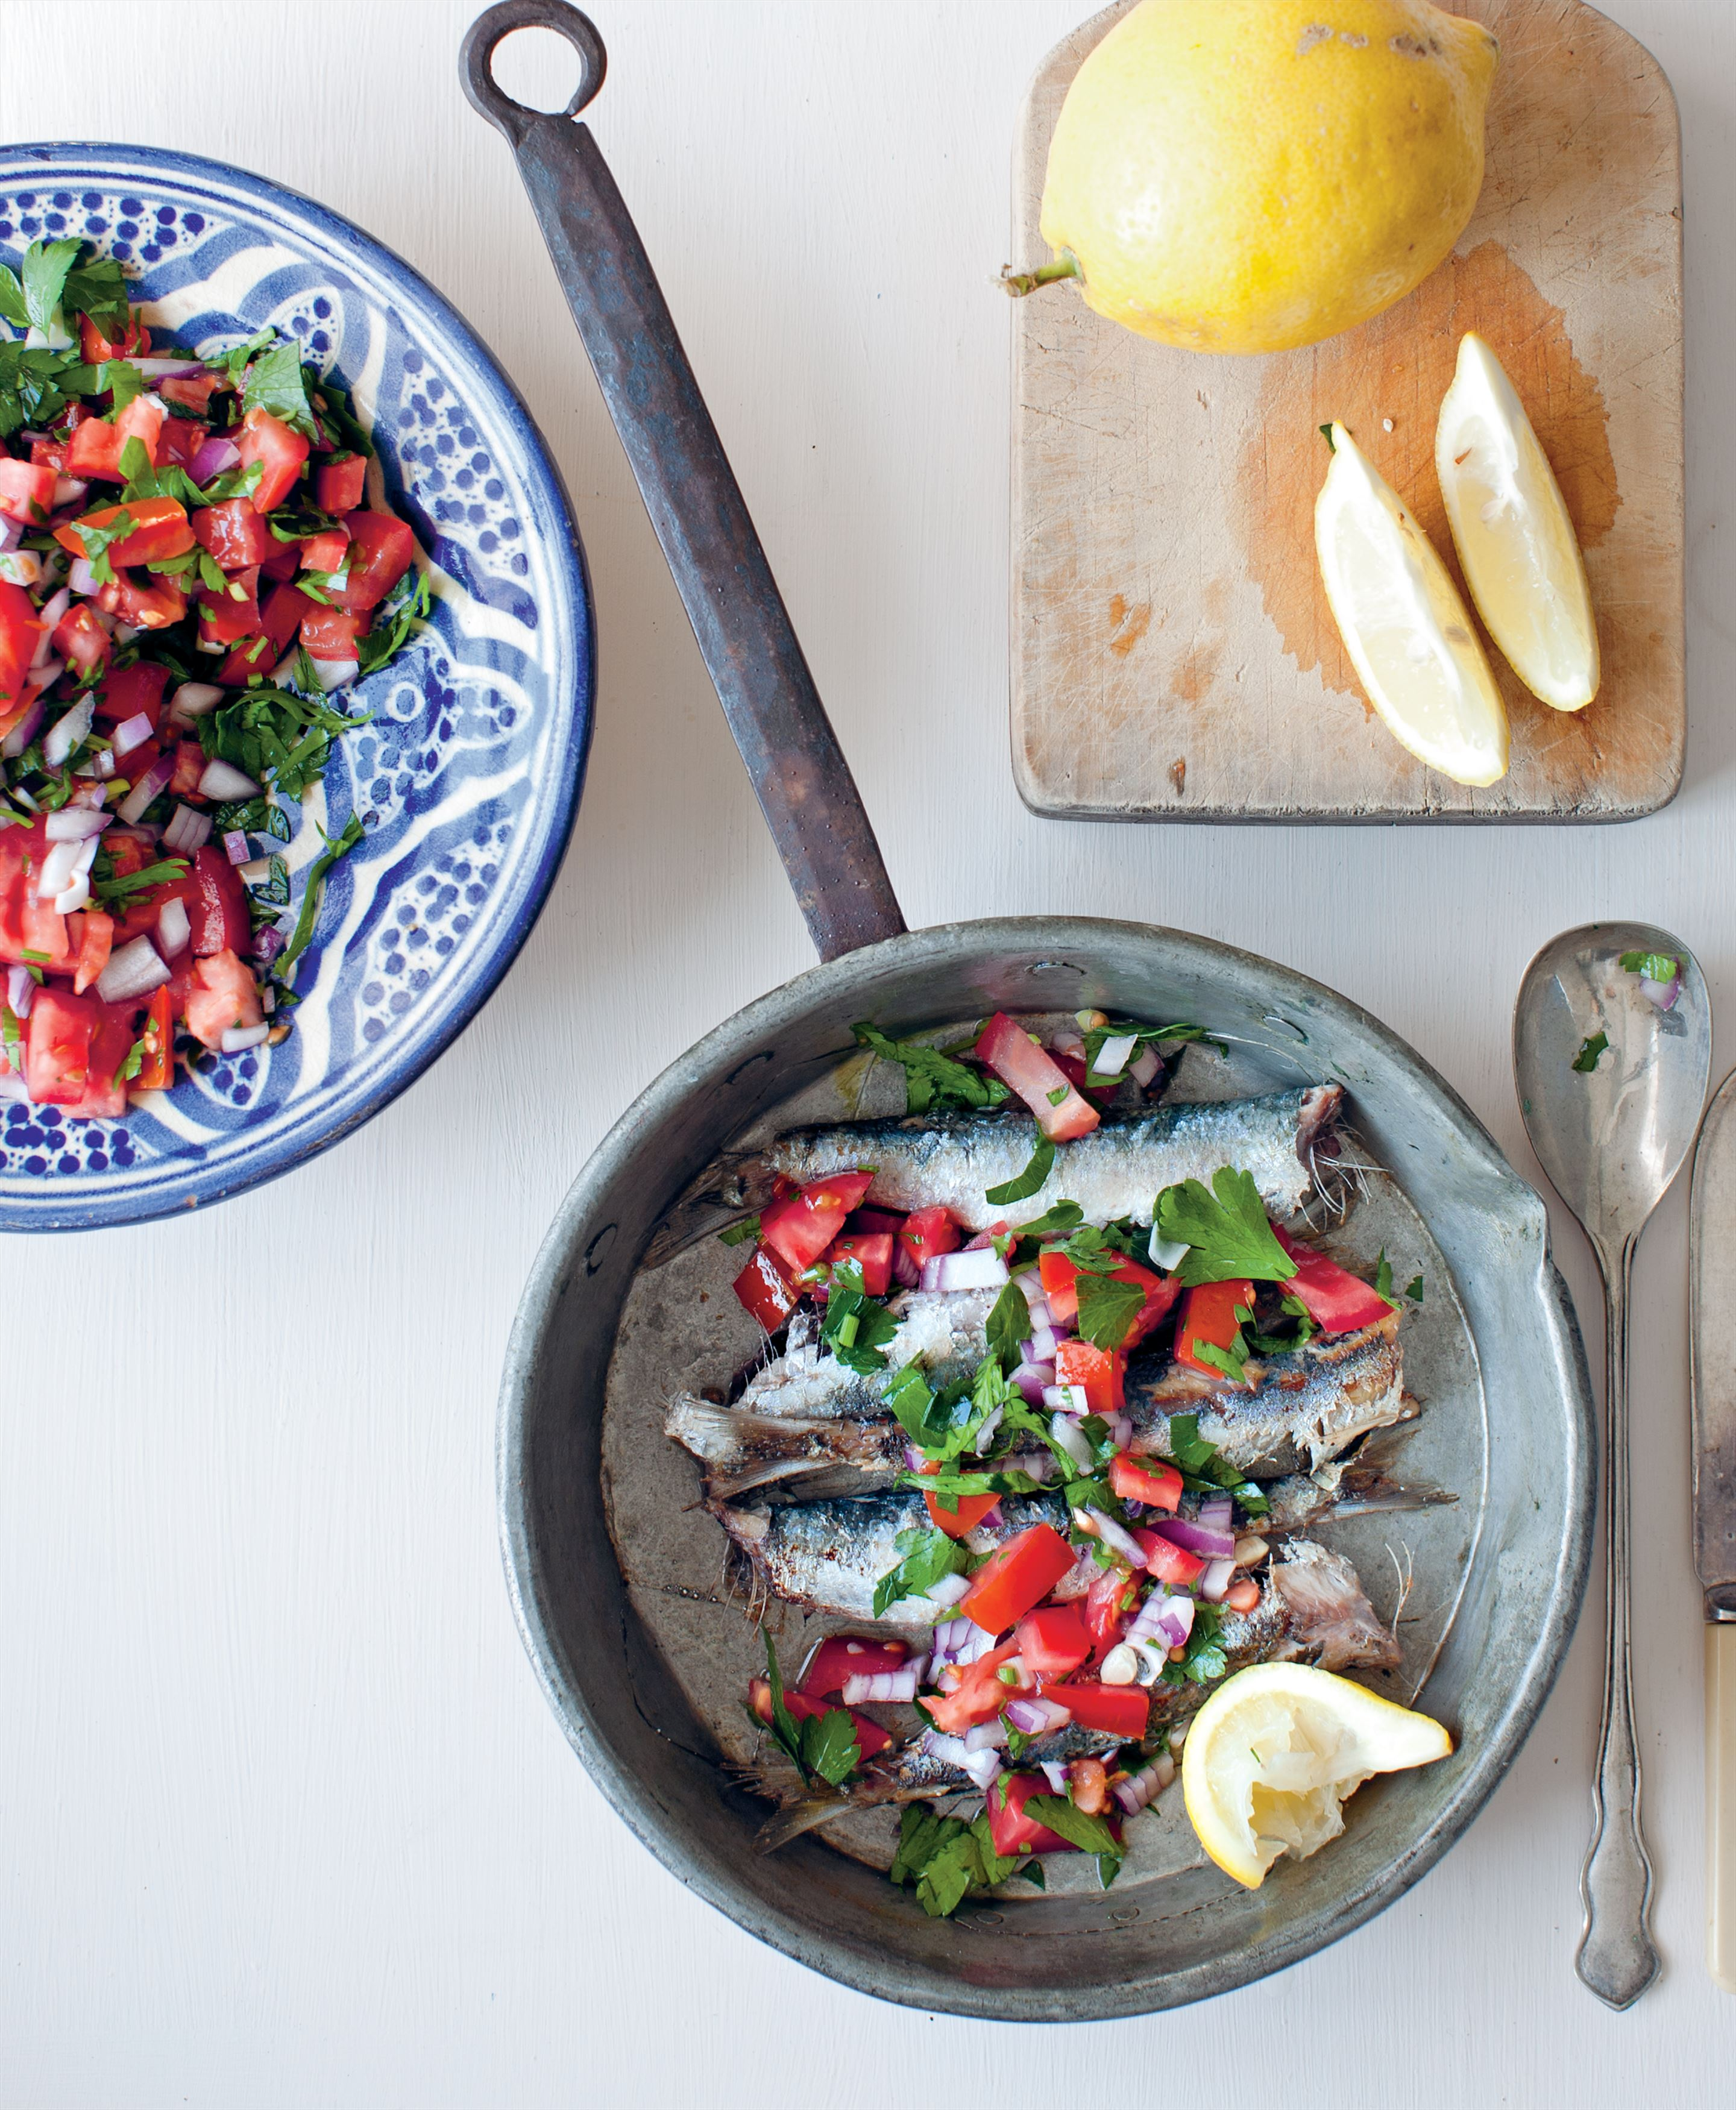 Turkish-style sardines with tomato salad